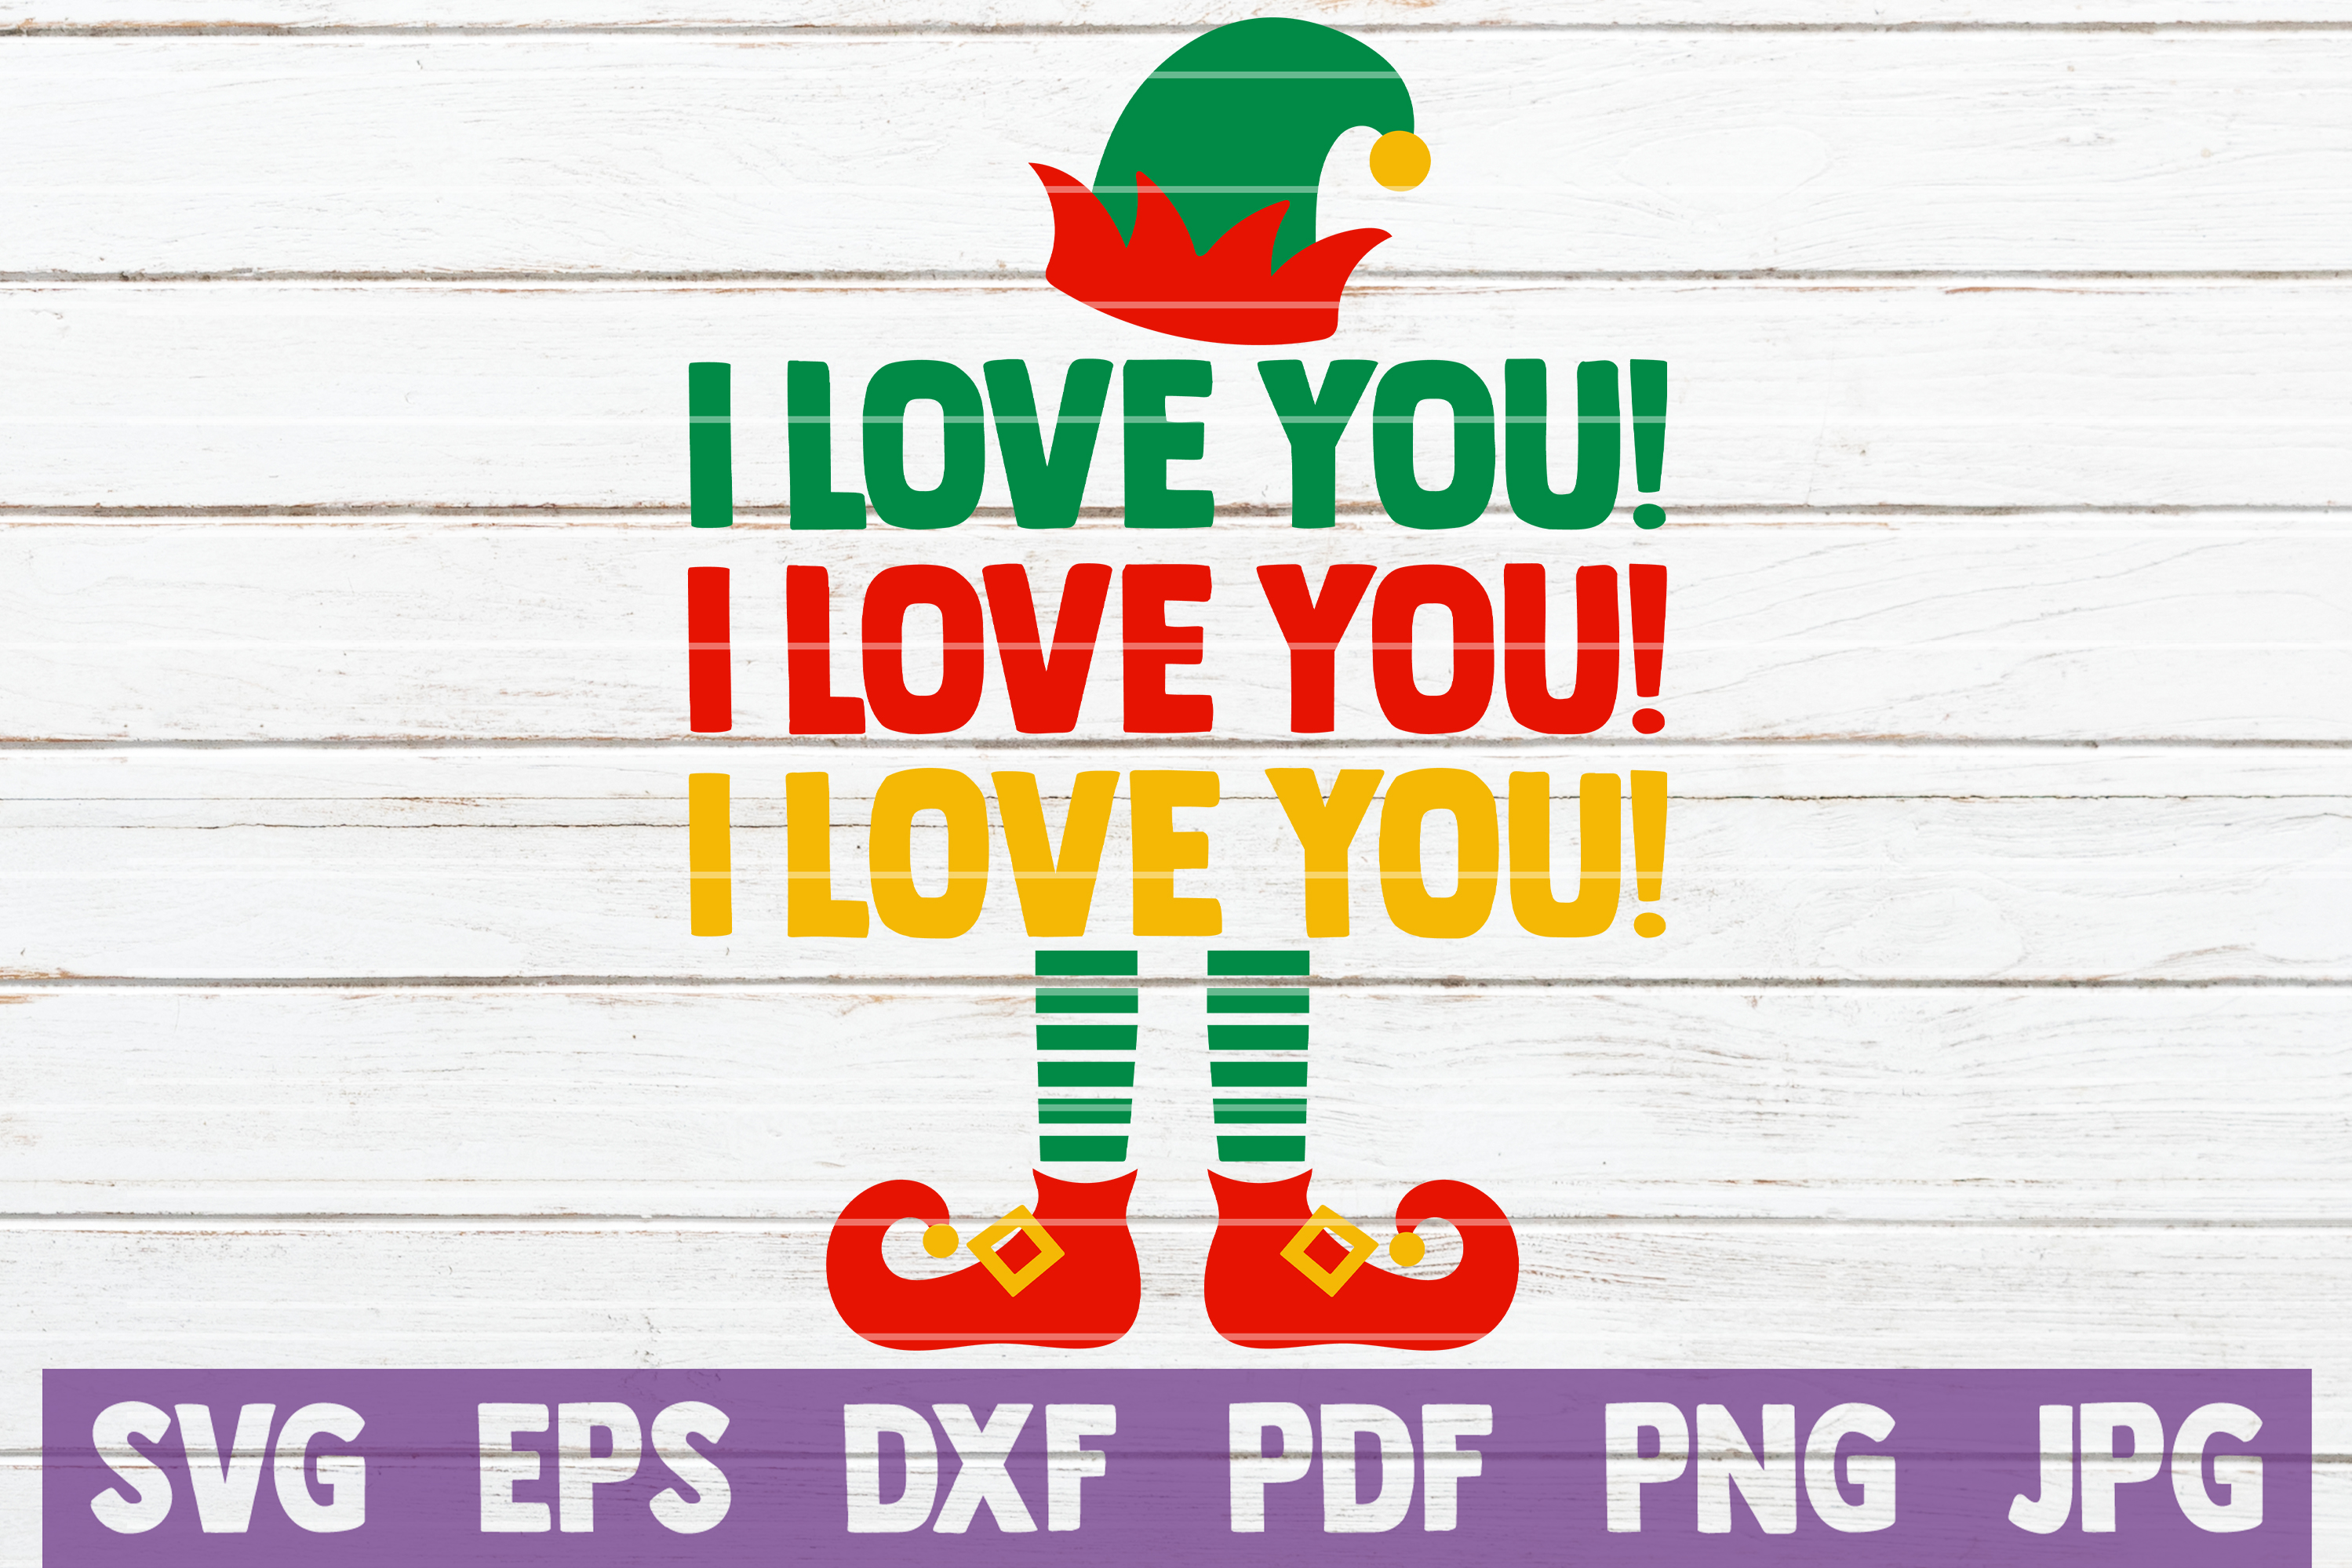 I Love You! I Love You! I Love You! SVG Cut File example image 1